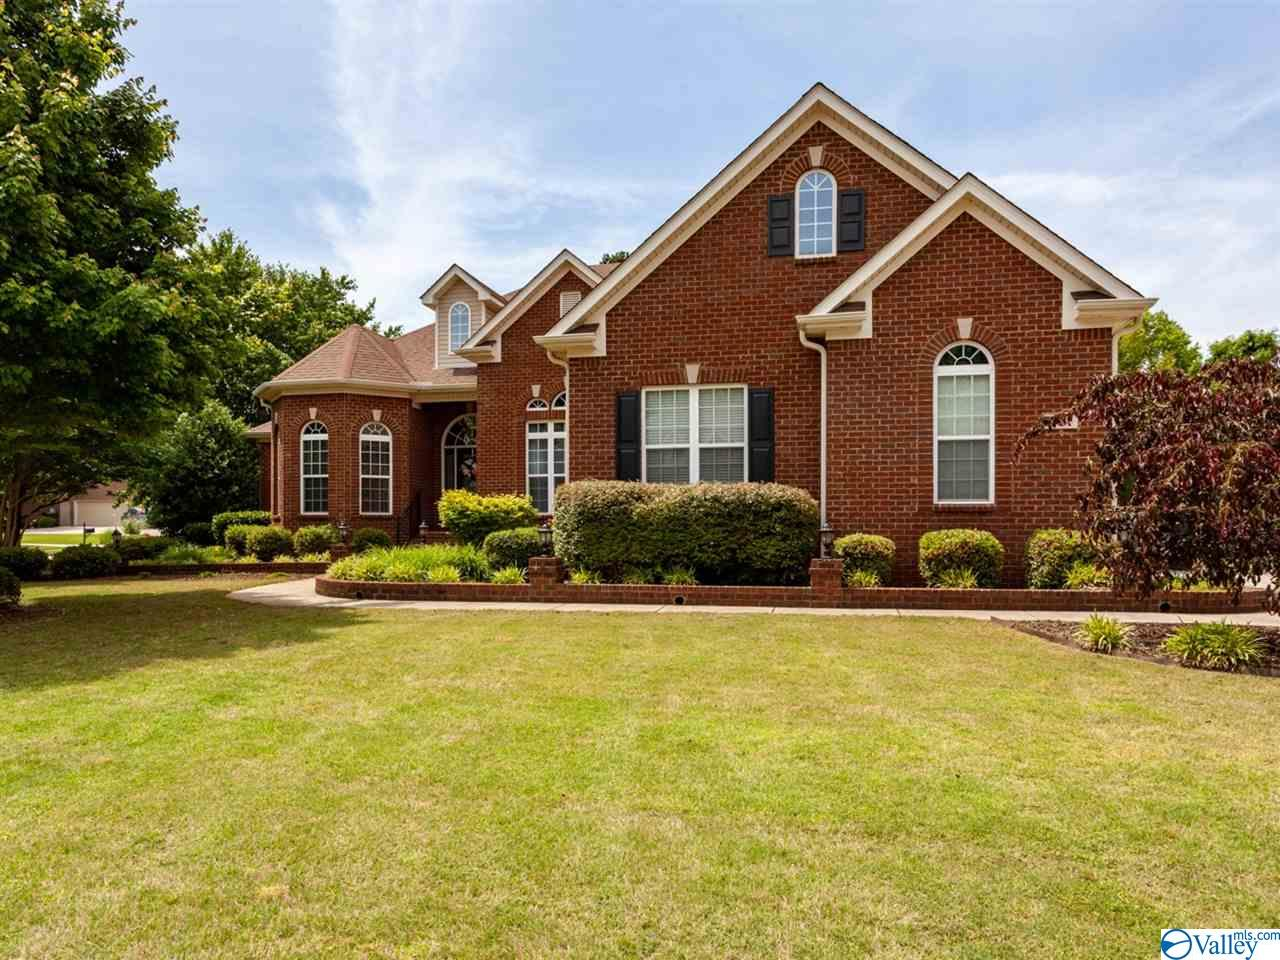 101 GENTRY COURT, MADISON, AL 35758